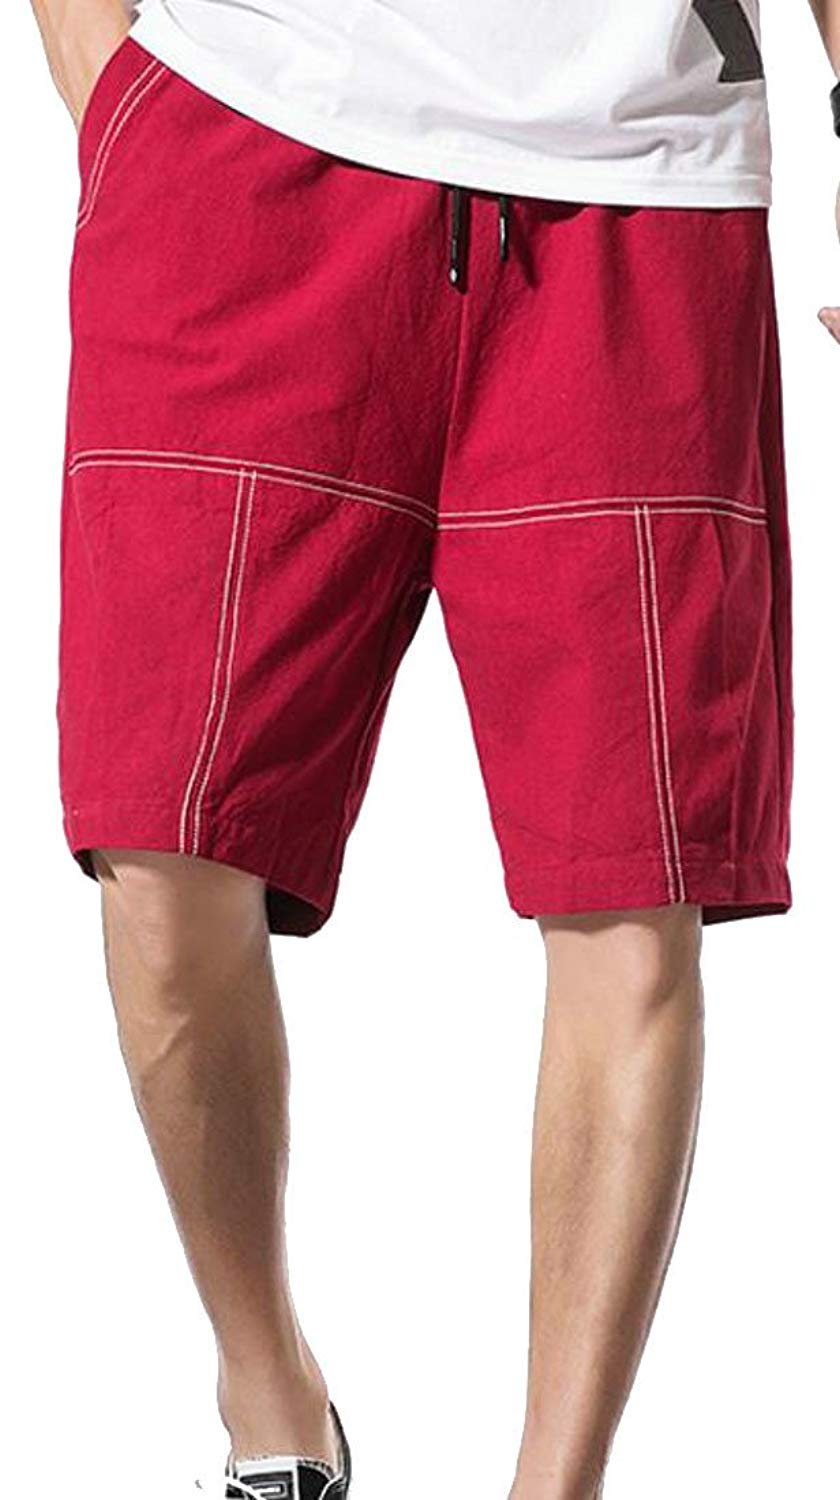 bf10cae895 Get Quotations · goldenharvest GH Mens Baggy Waist Drawstring Baggy Sport  Short Pants Beach Board Shorts